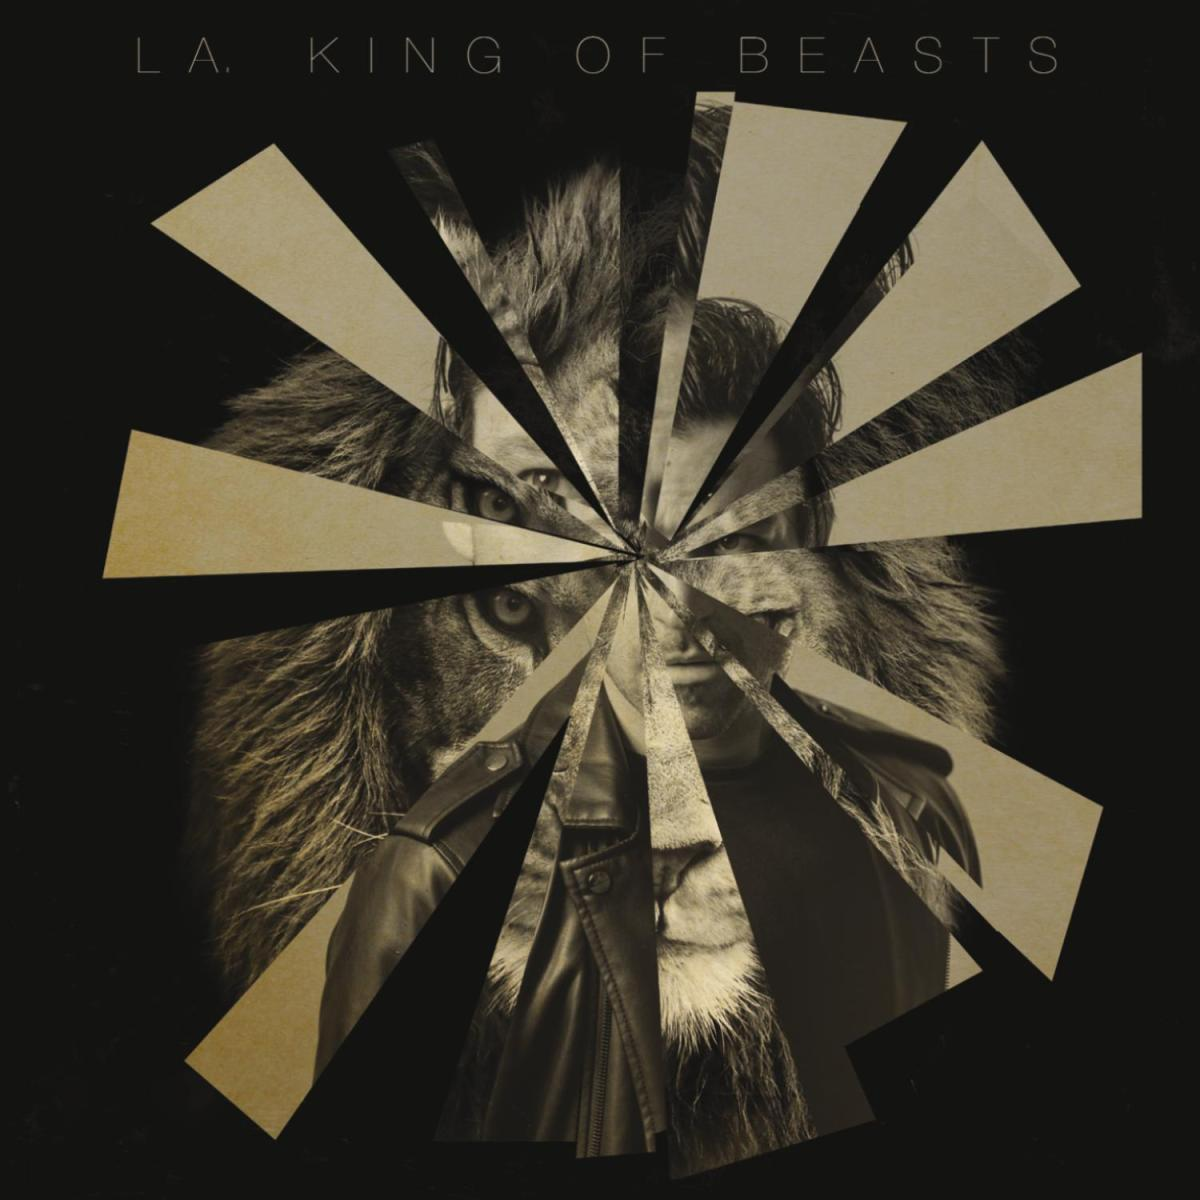 L.A.: King Of Beasts (2017) Book Cover